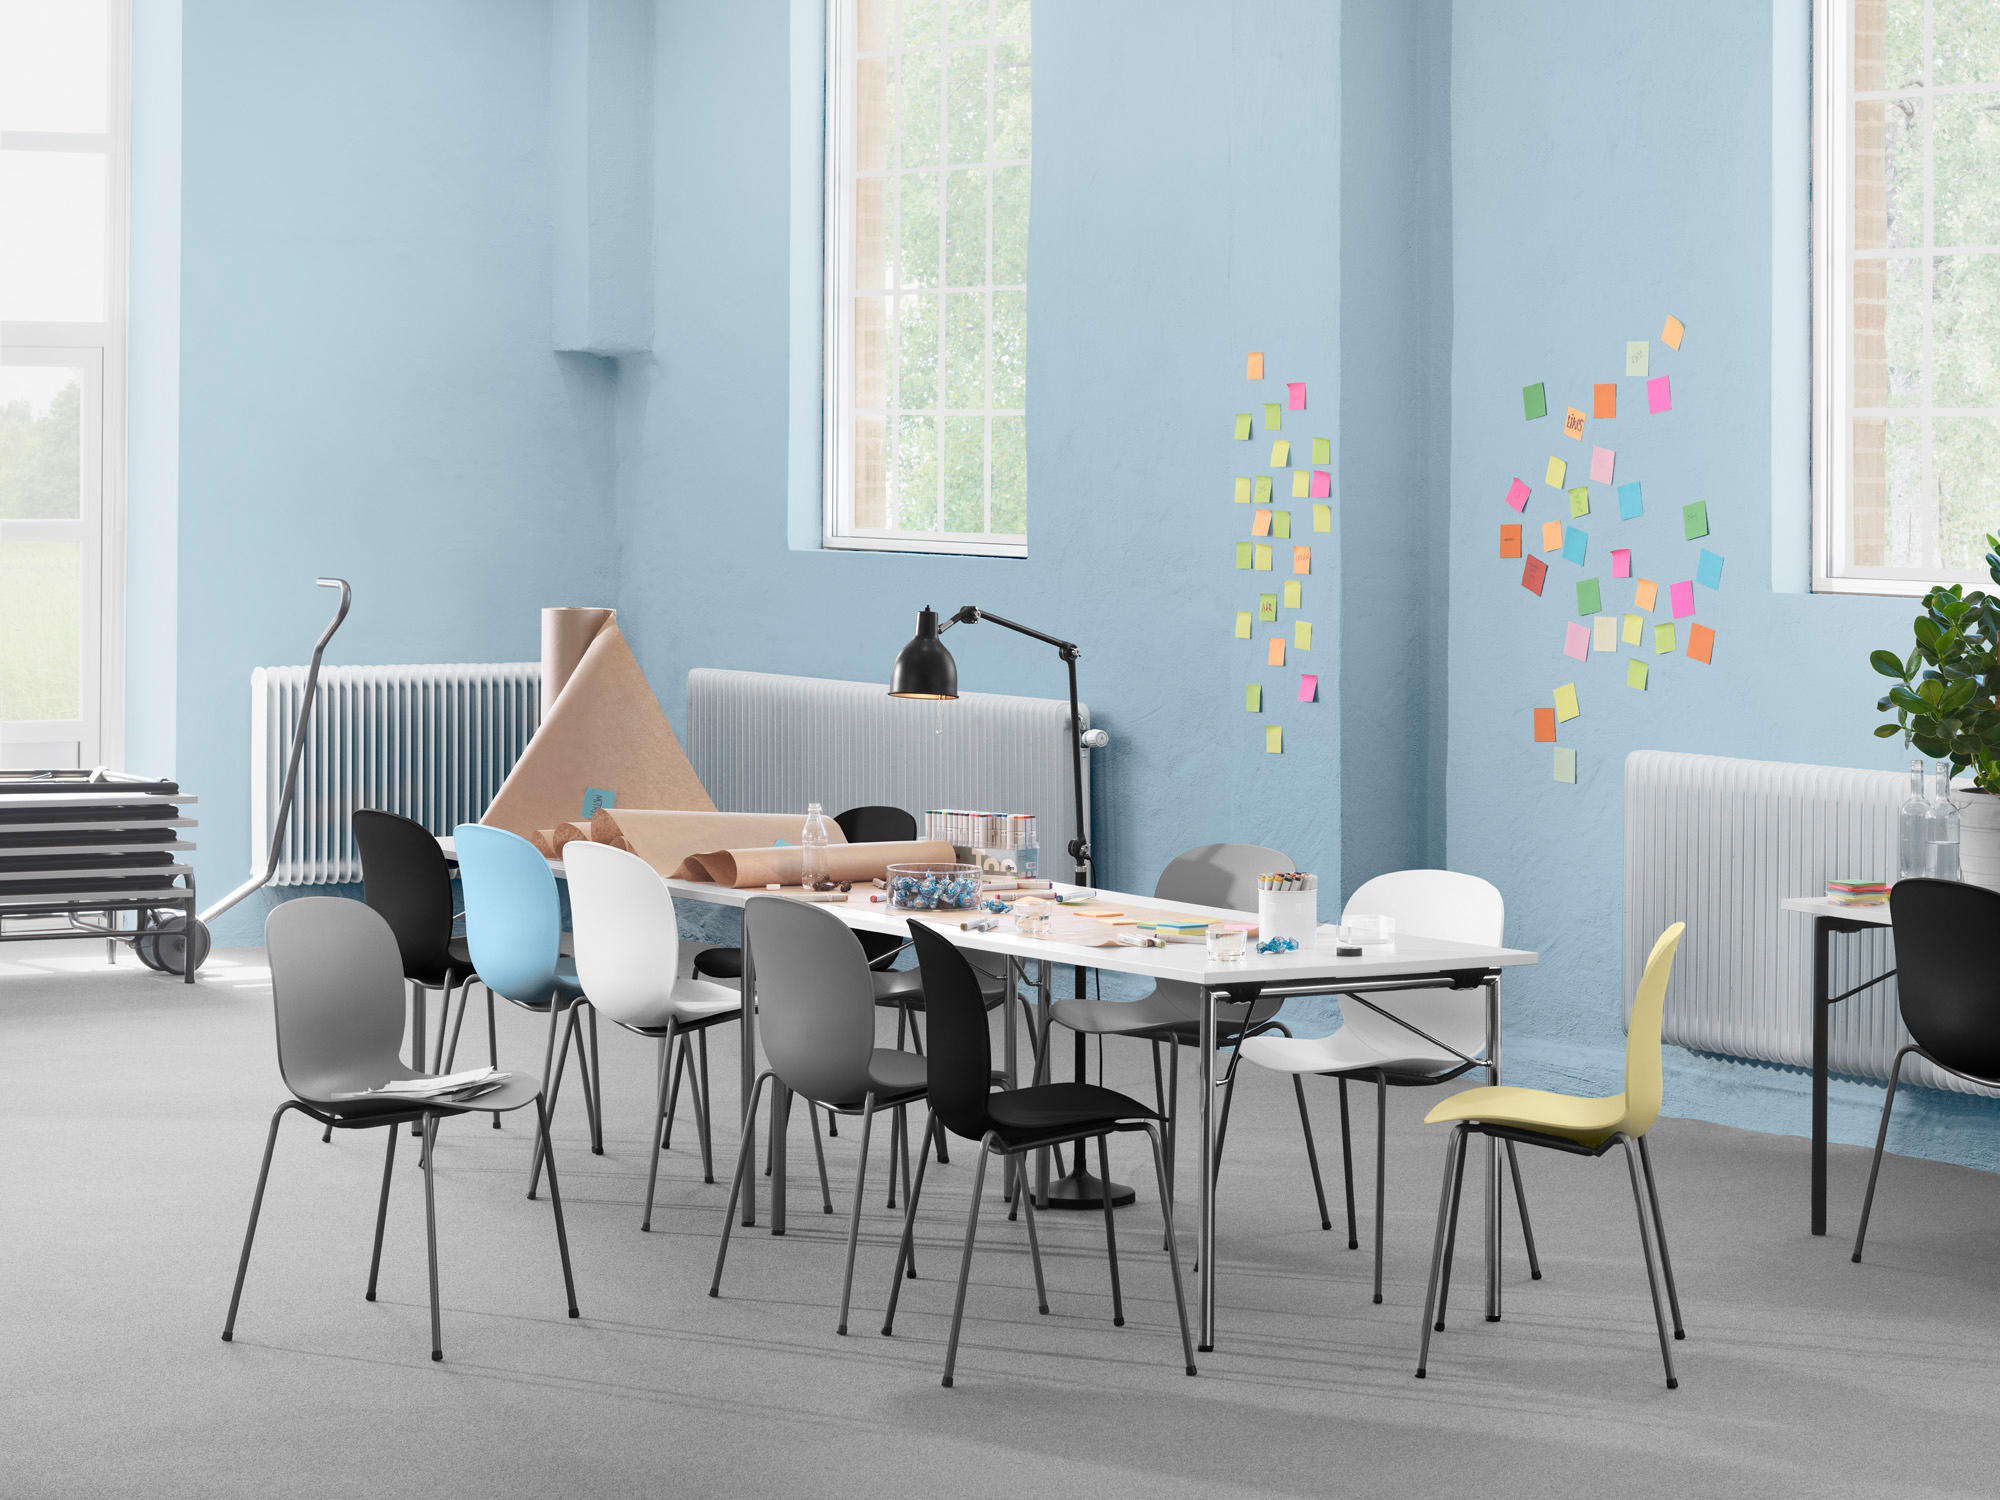 RBM ULTIMA ELIPSE - Contract tables from Flokk | Architonic